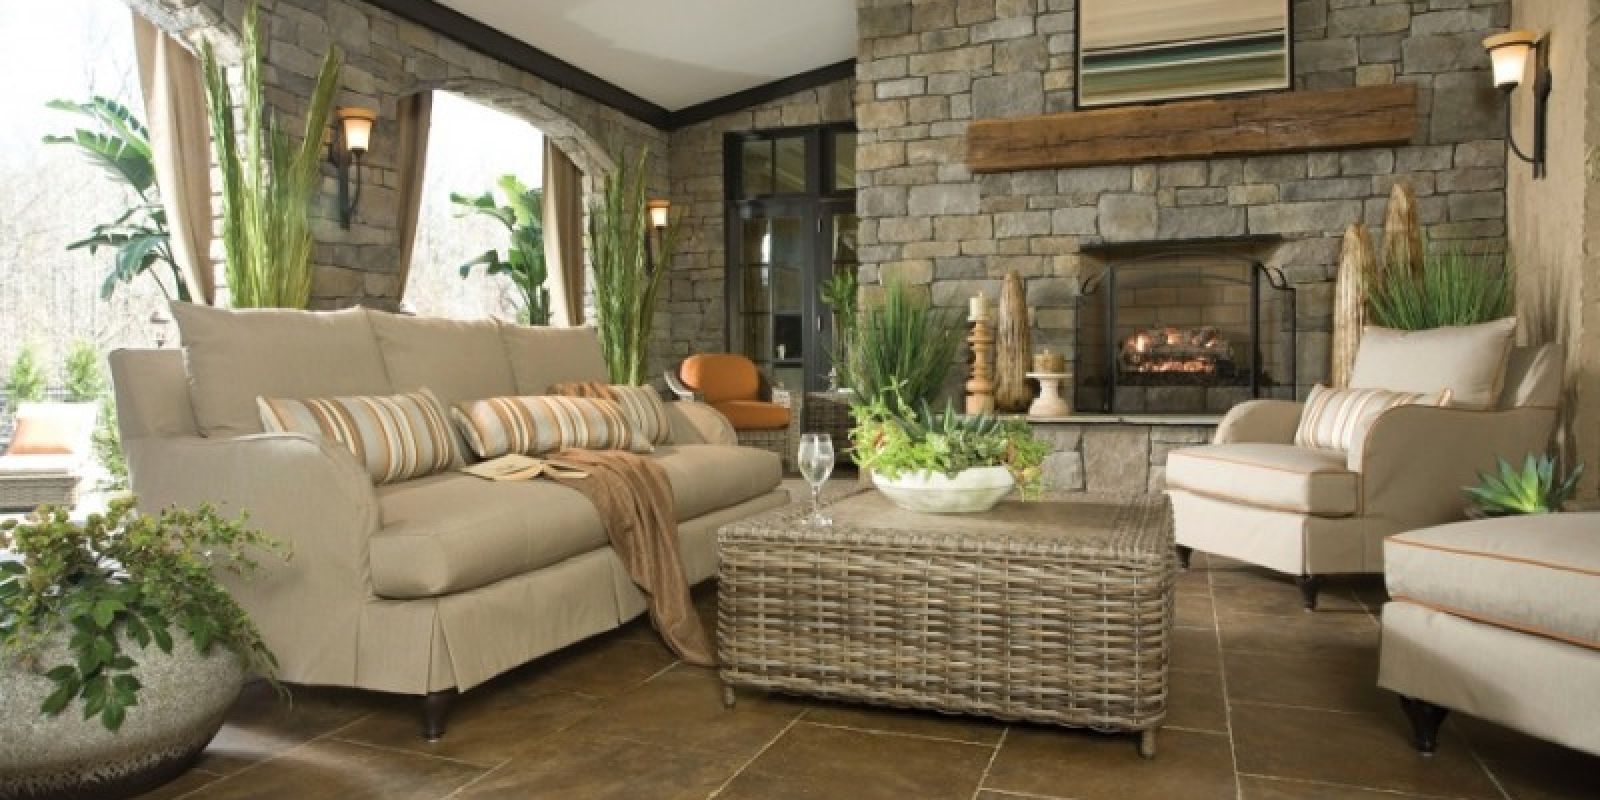 Outdoor Patio Design Specialist | American Casual Living on Porch & Patio Casual Living id=44297